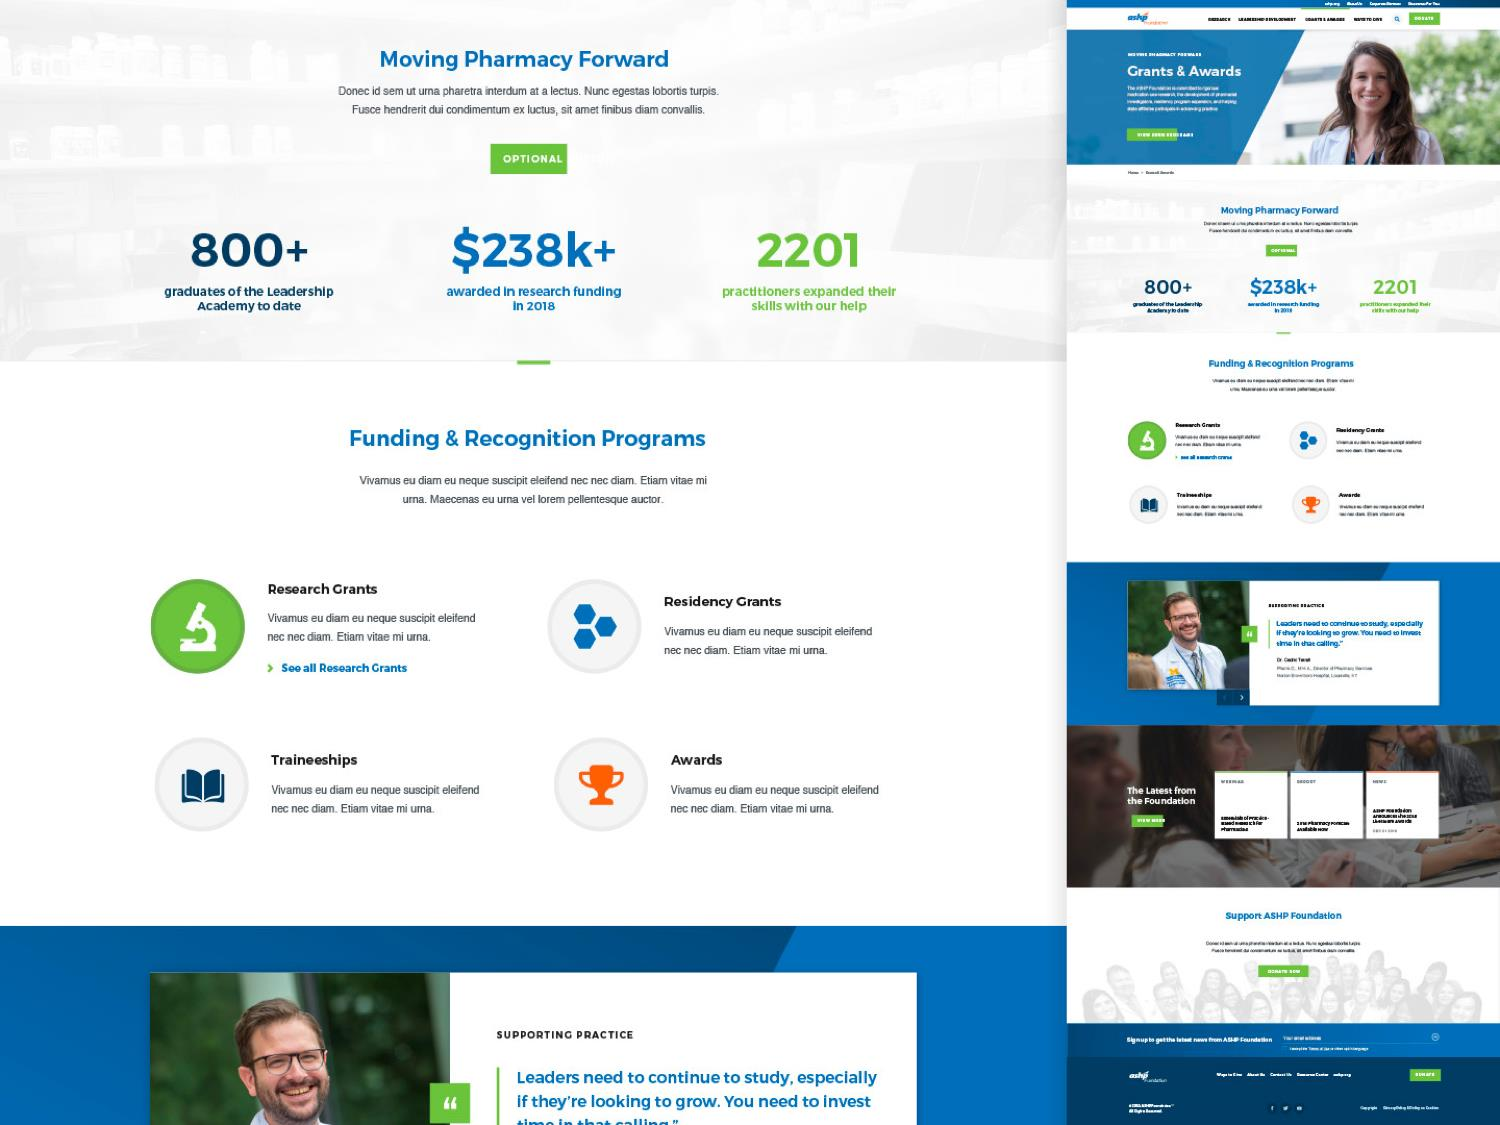 ASHP Foundation Website Strategy, Design and Development